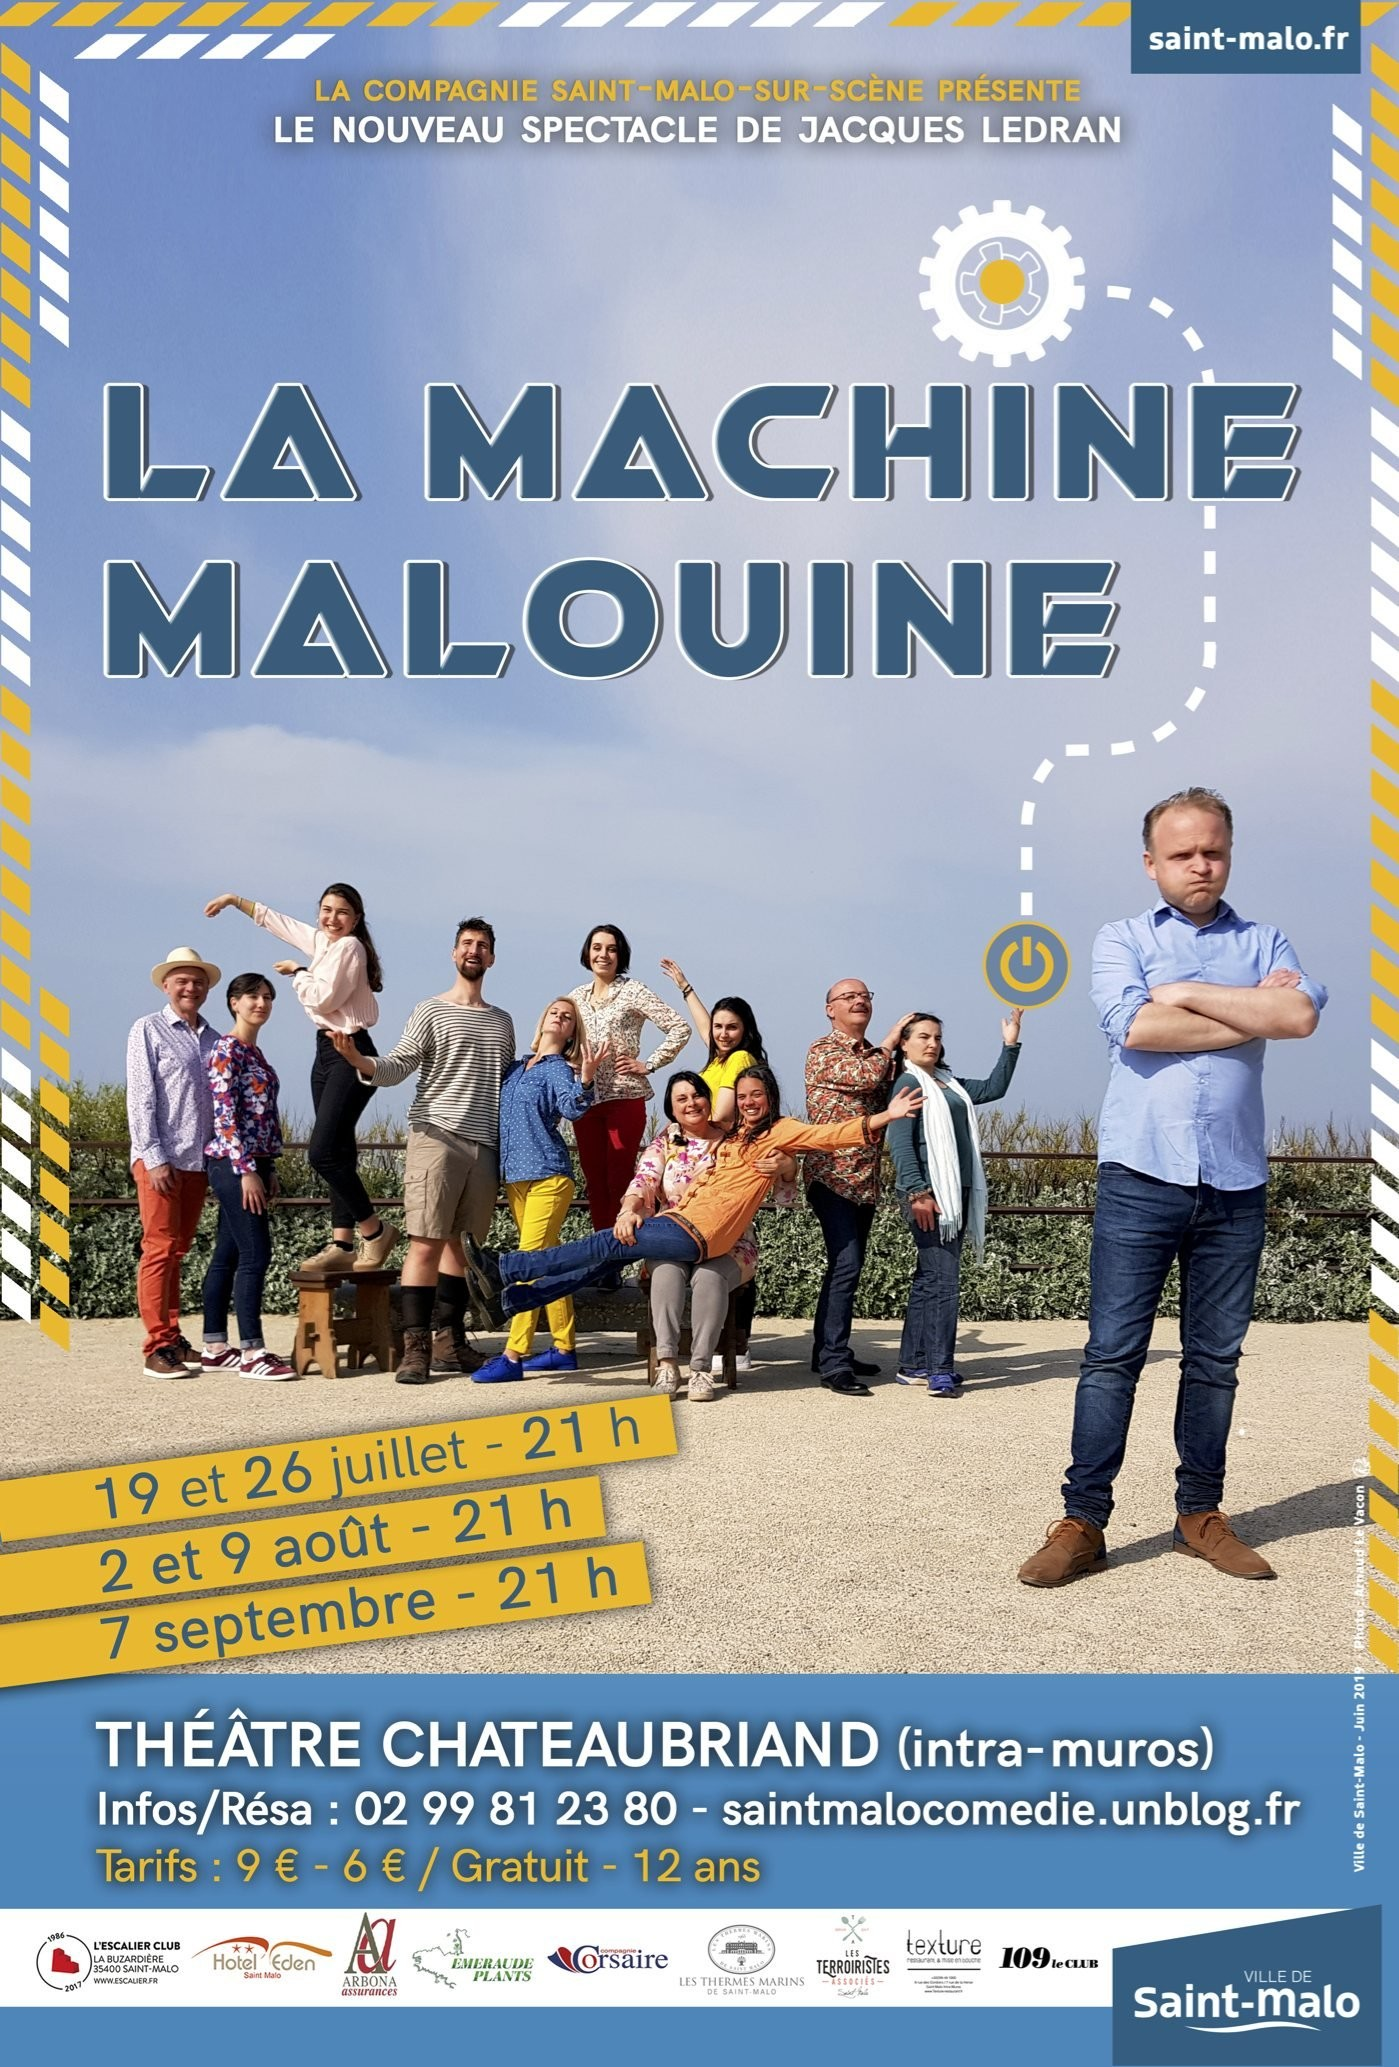 La Machine Malouine